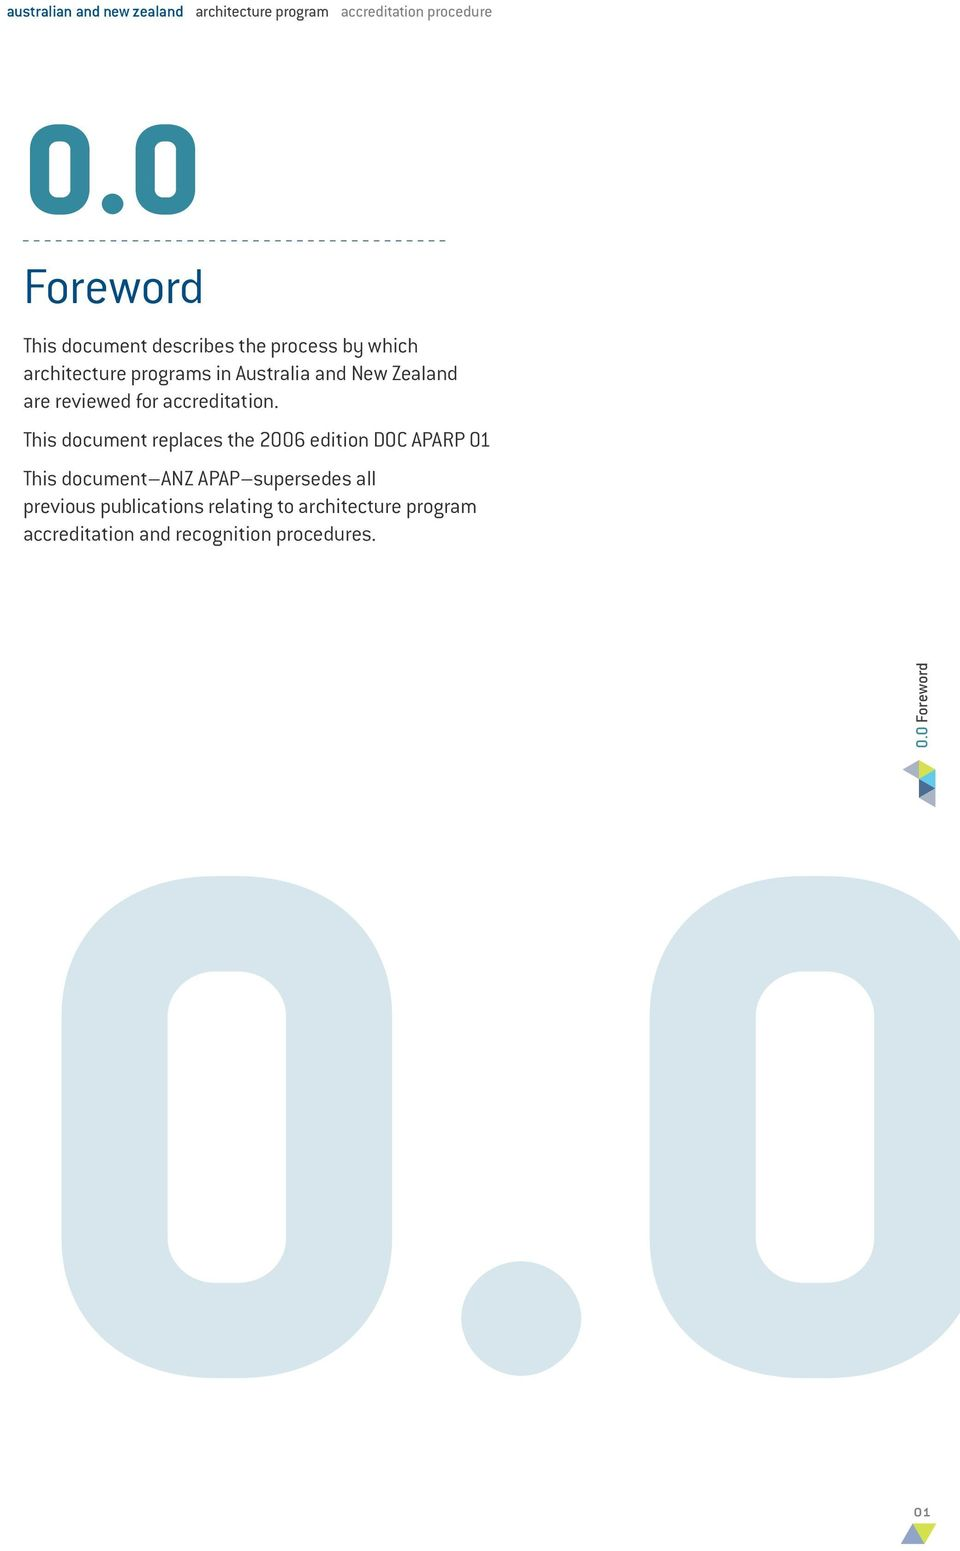 This document replaces the 2006 edition DOC APARP 01 This document ANZ APAP supersedes